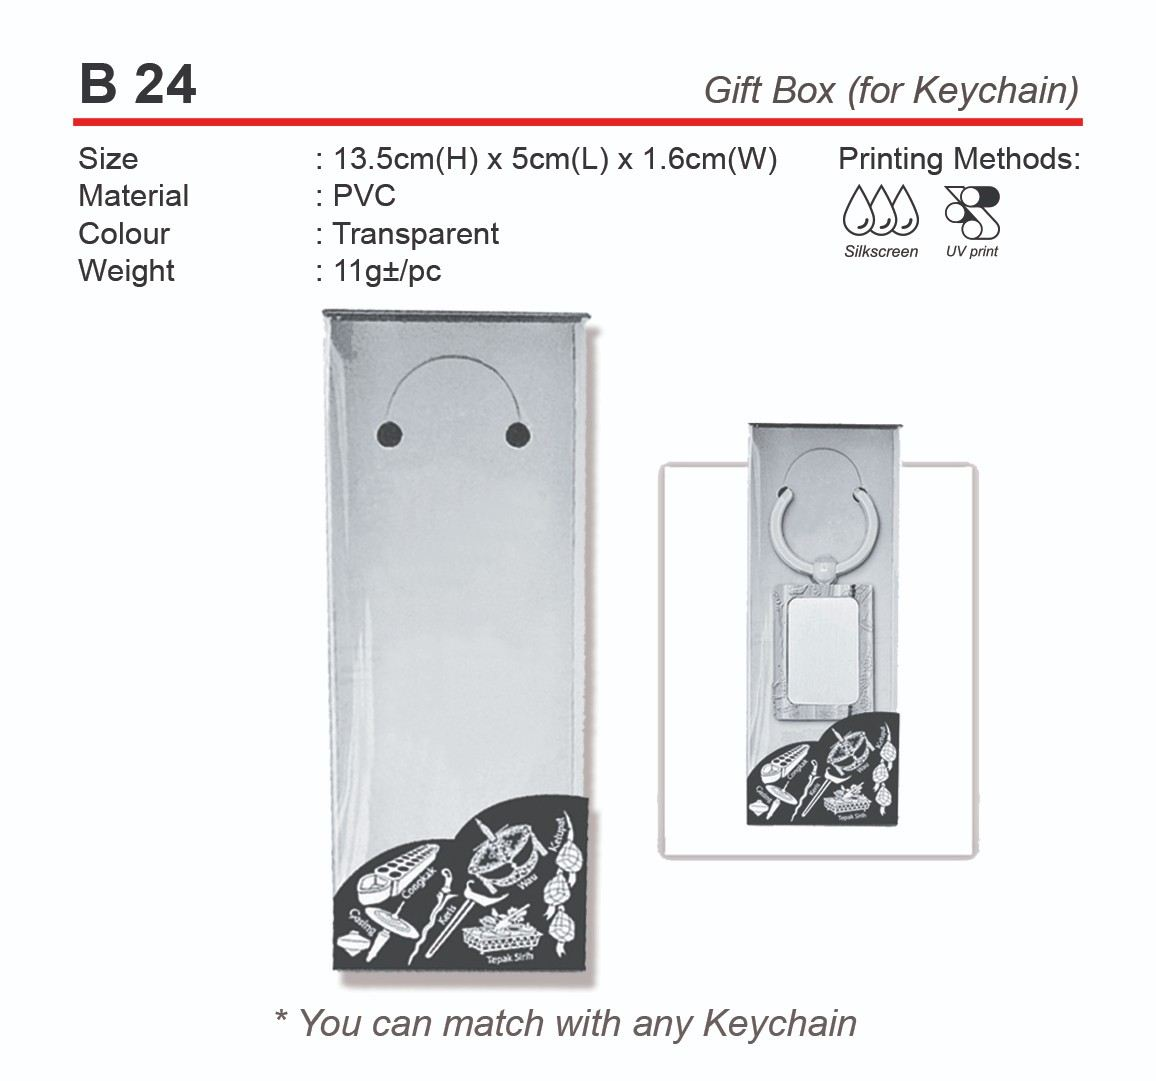 B24 Gift Box for Keychain